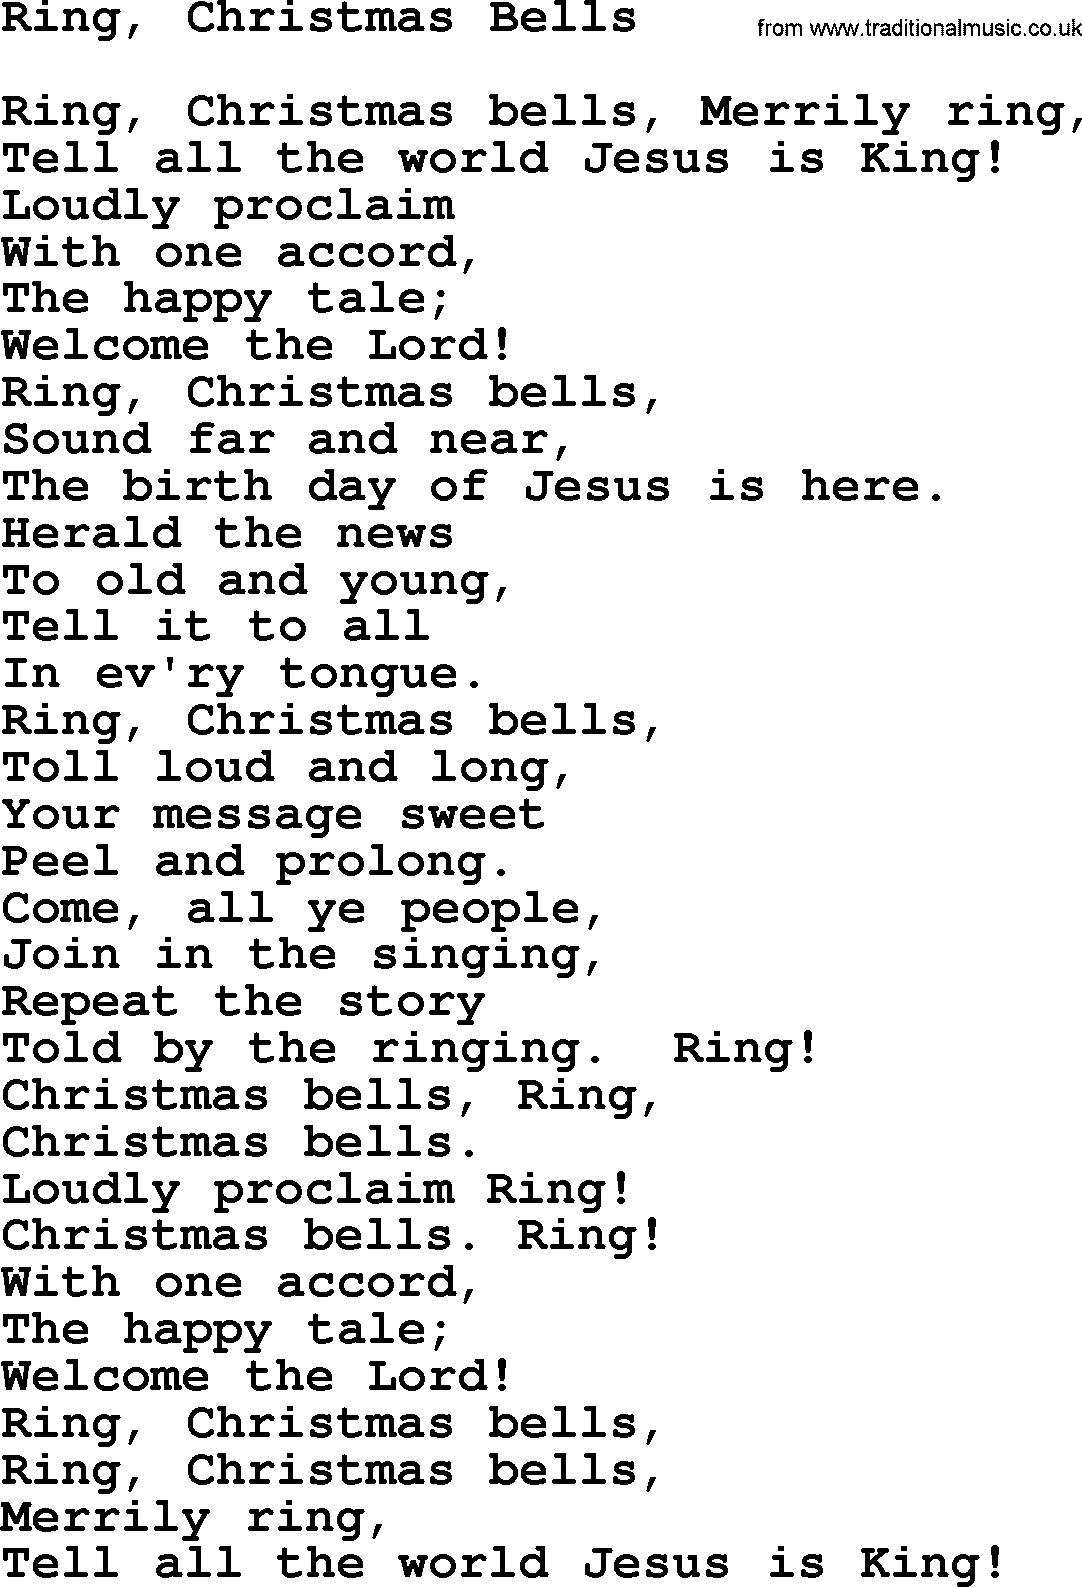 RING CHRISTMAS BELLS LYRICS - YouTube